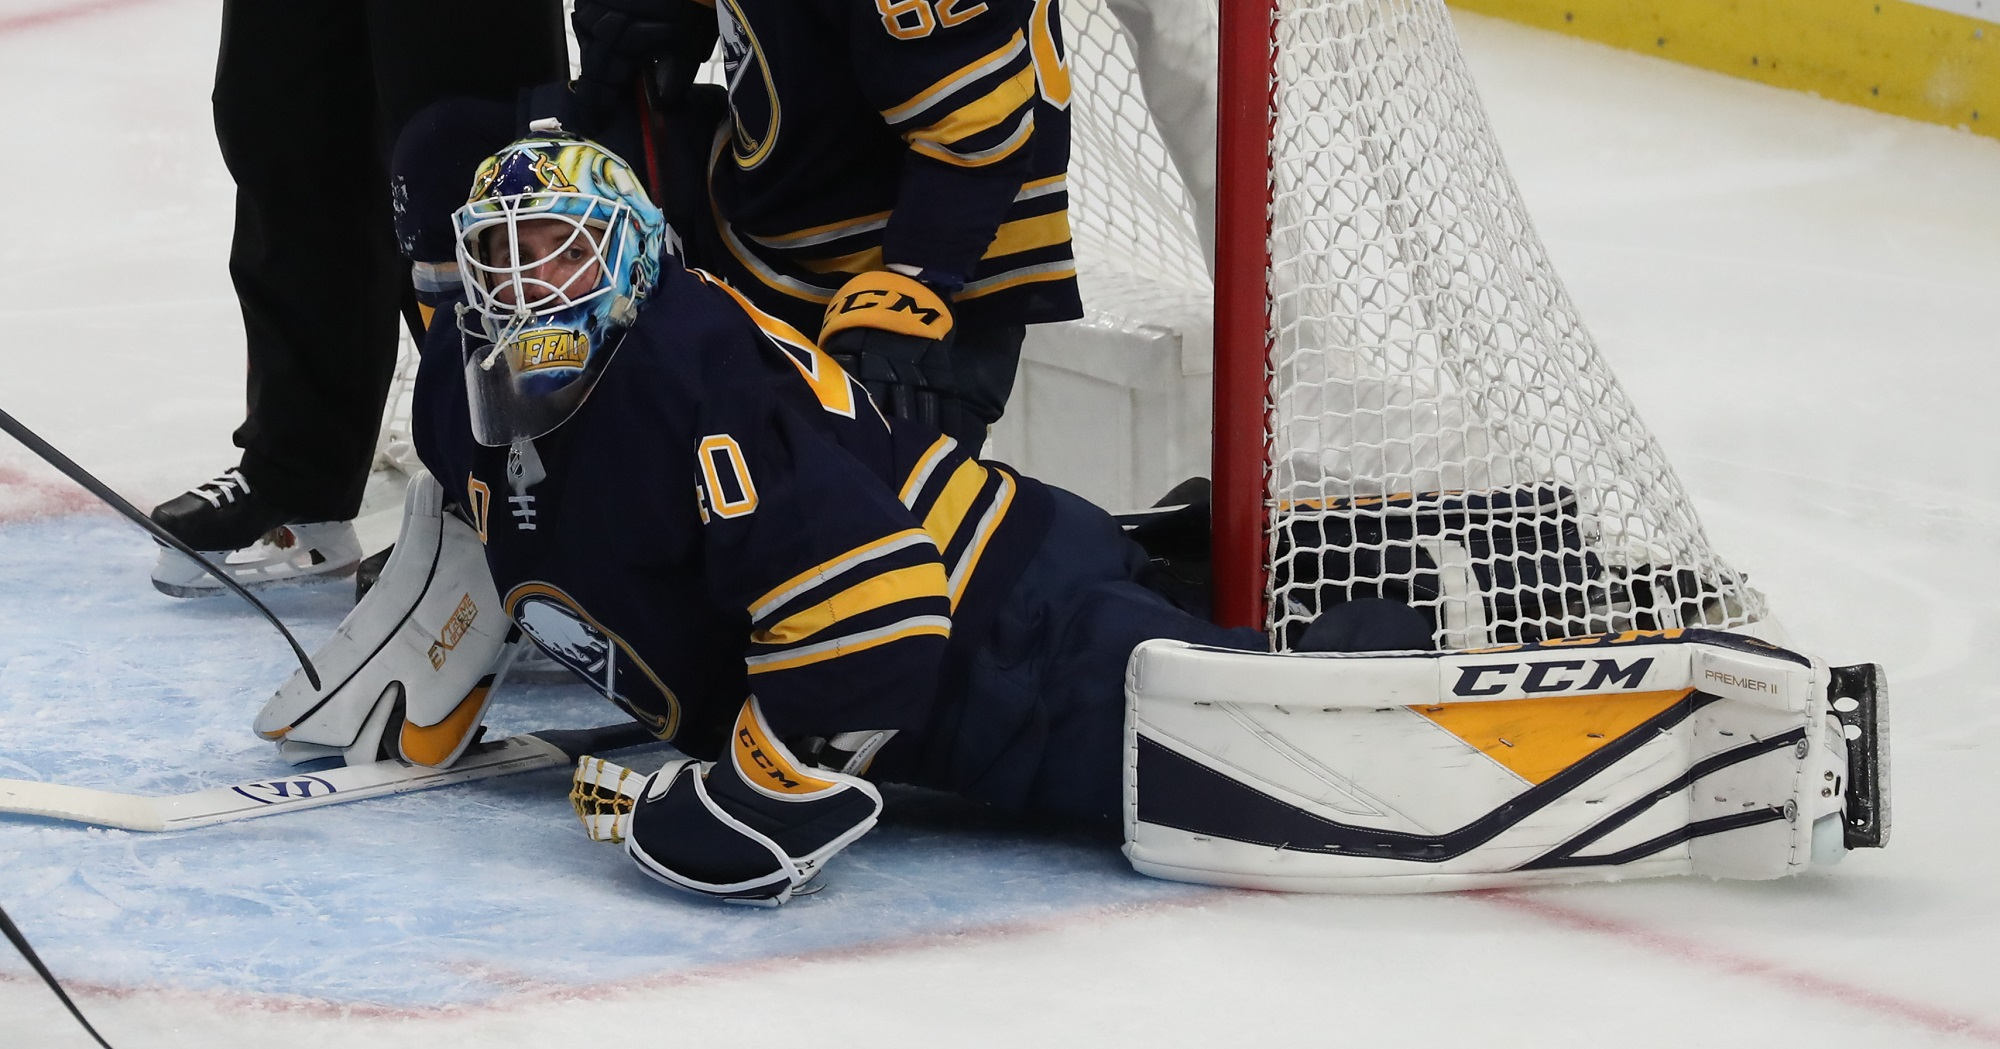 One of Sabres goalie Carter Hutton's 29 saves in Buffalo's 2-1 win over Tampa Bay. (James P. McCoy/Buffalo News)